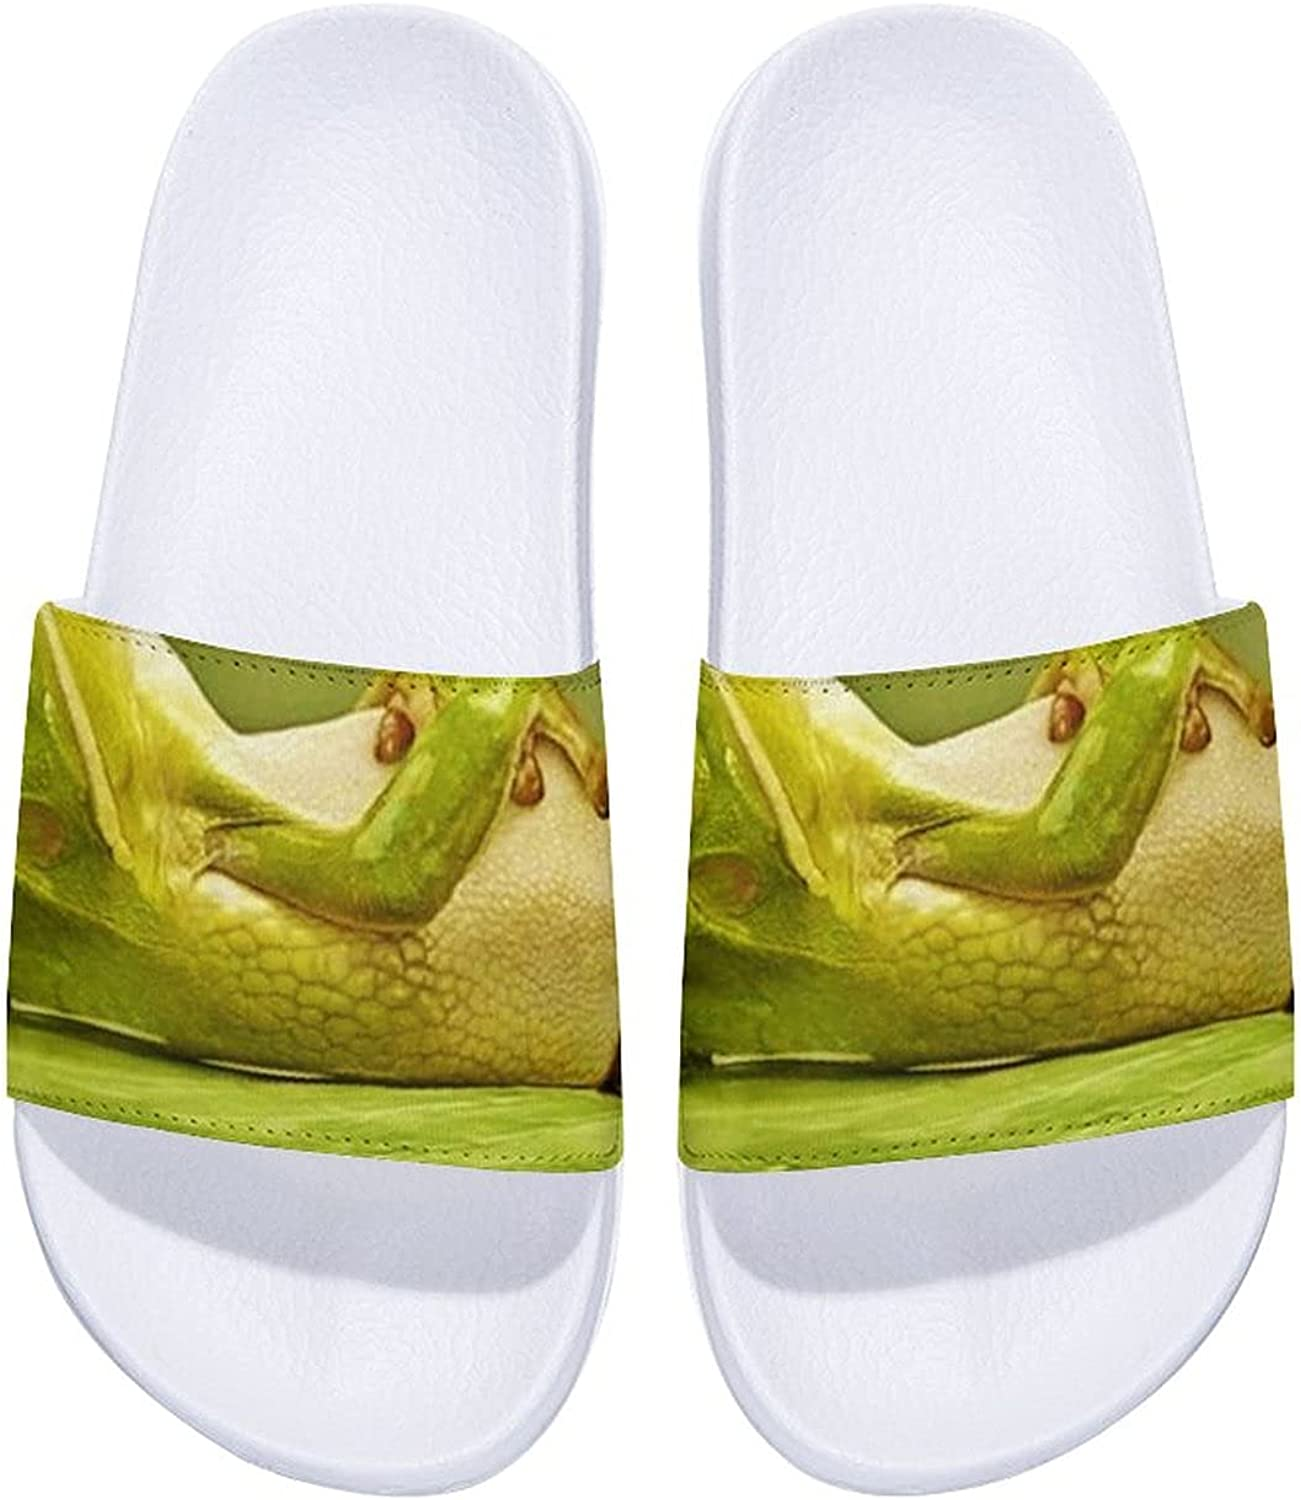 Funny Frog-1 Men's and Fort Worth Mall Women's Outd Slide Sandals Comfort Chicago Mall Indoor